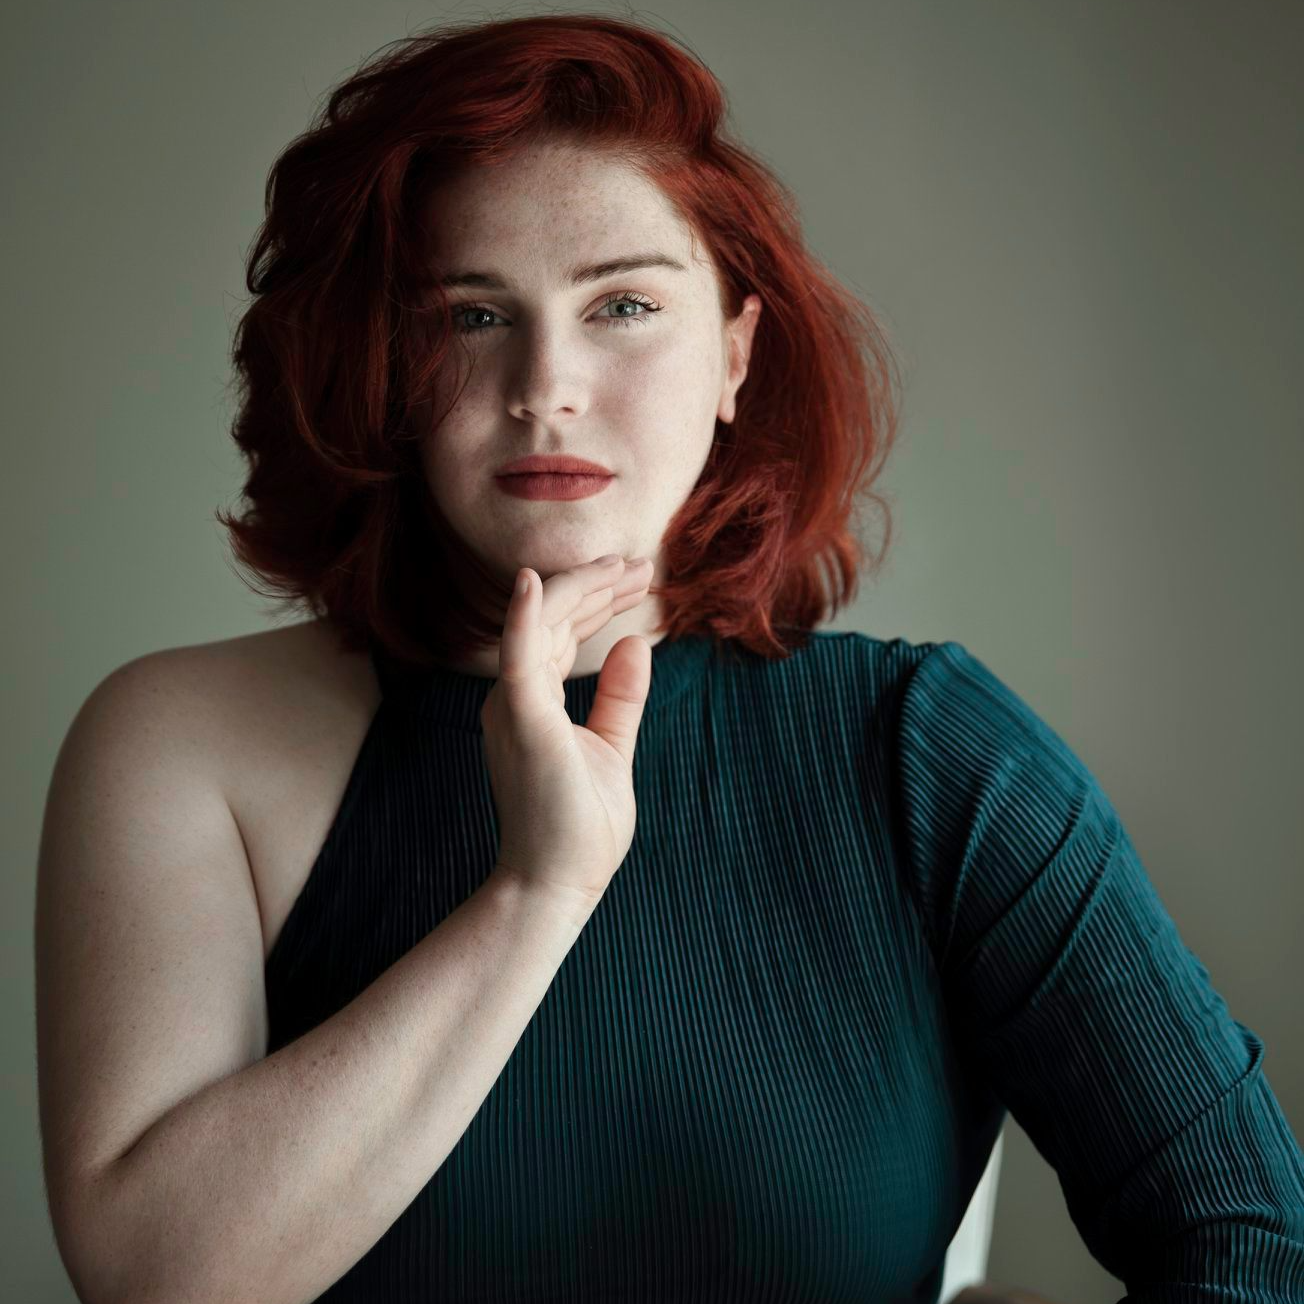 A still photo of Evie, a white woman with a glowing auburn bob hairstyle, dressed in an off the shoulder teal top, with her right hand underneath her chin. Staring straight into the camera against light grey background